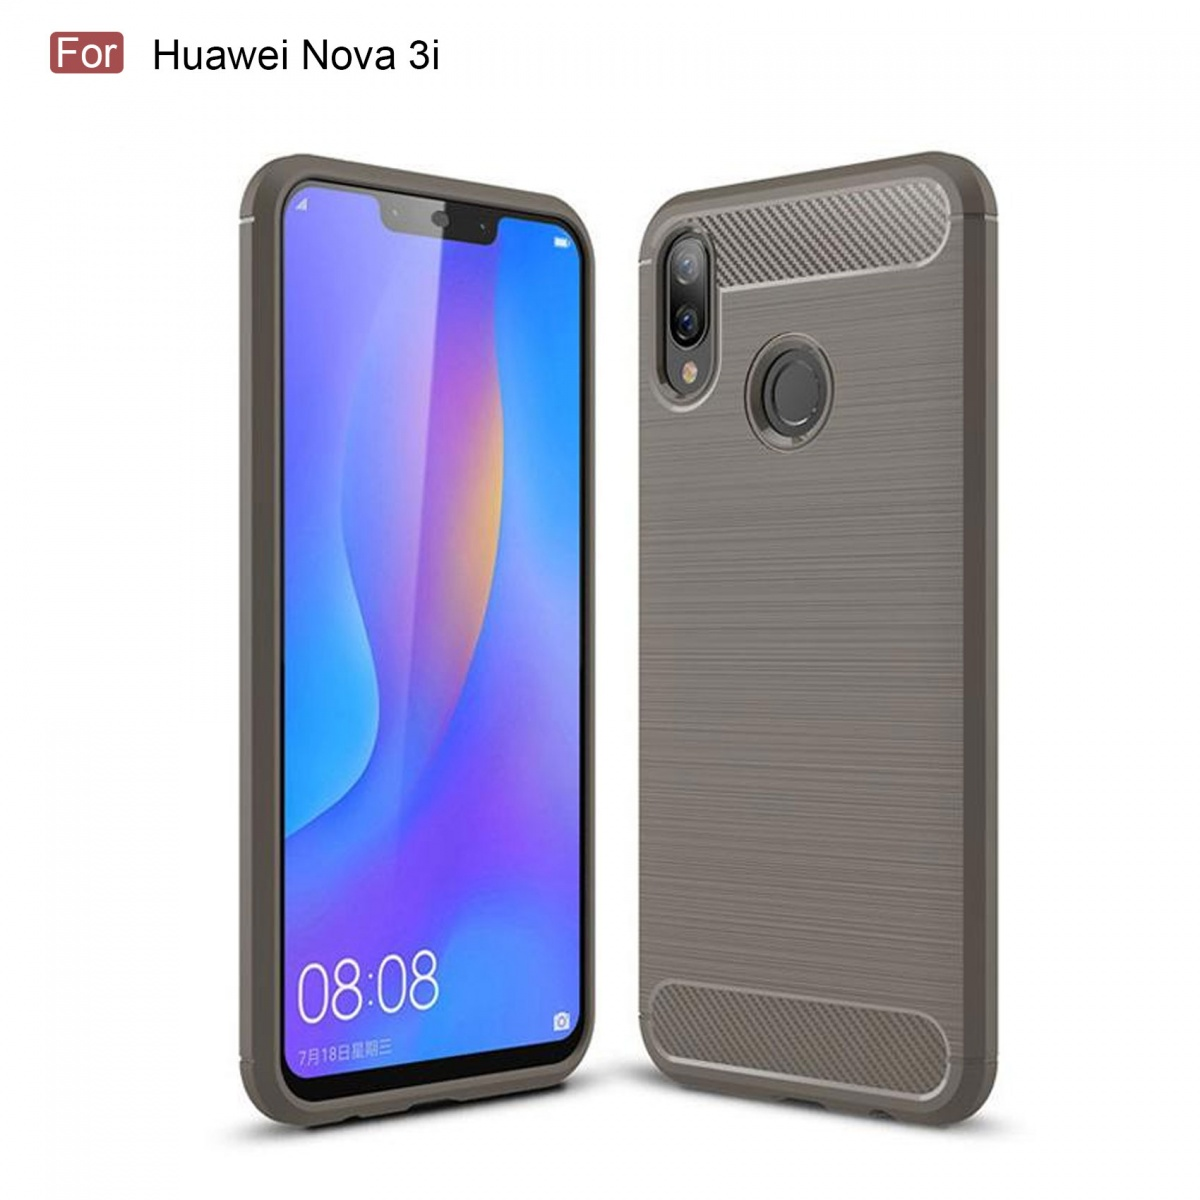 FOR SKU Huawei Nova 3i Fashion Fiber Phone Case - Gray